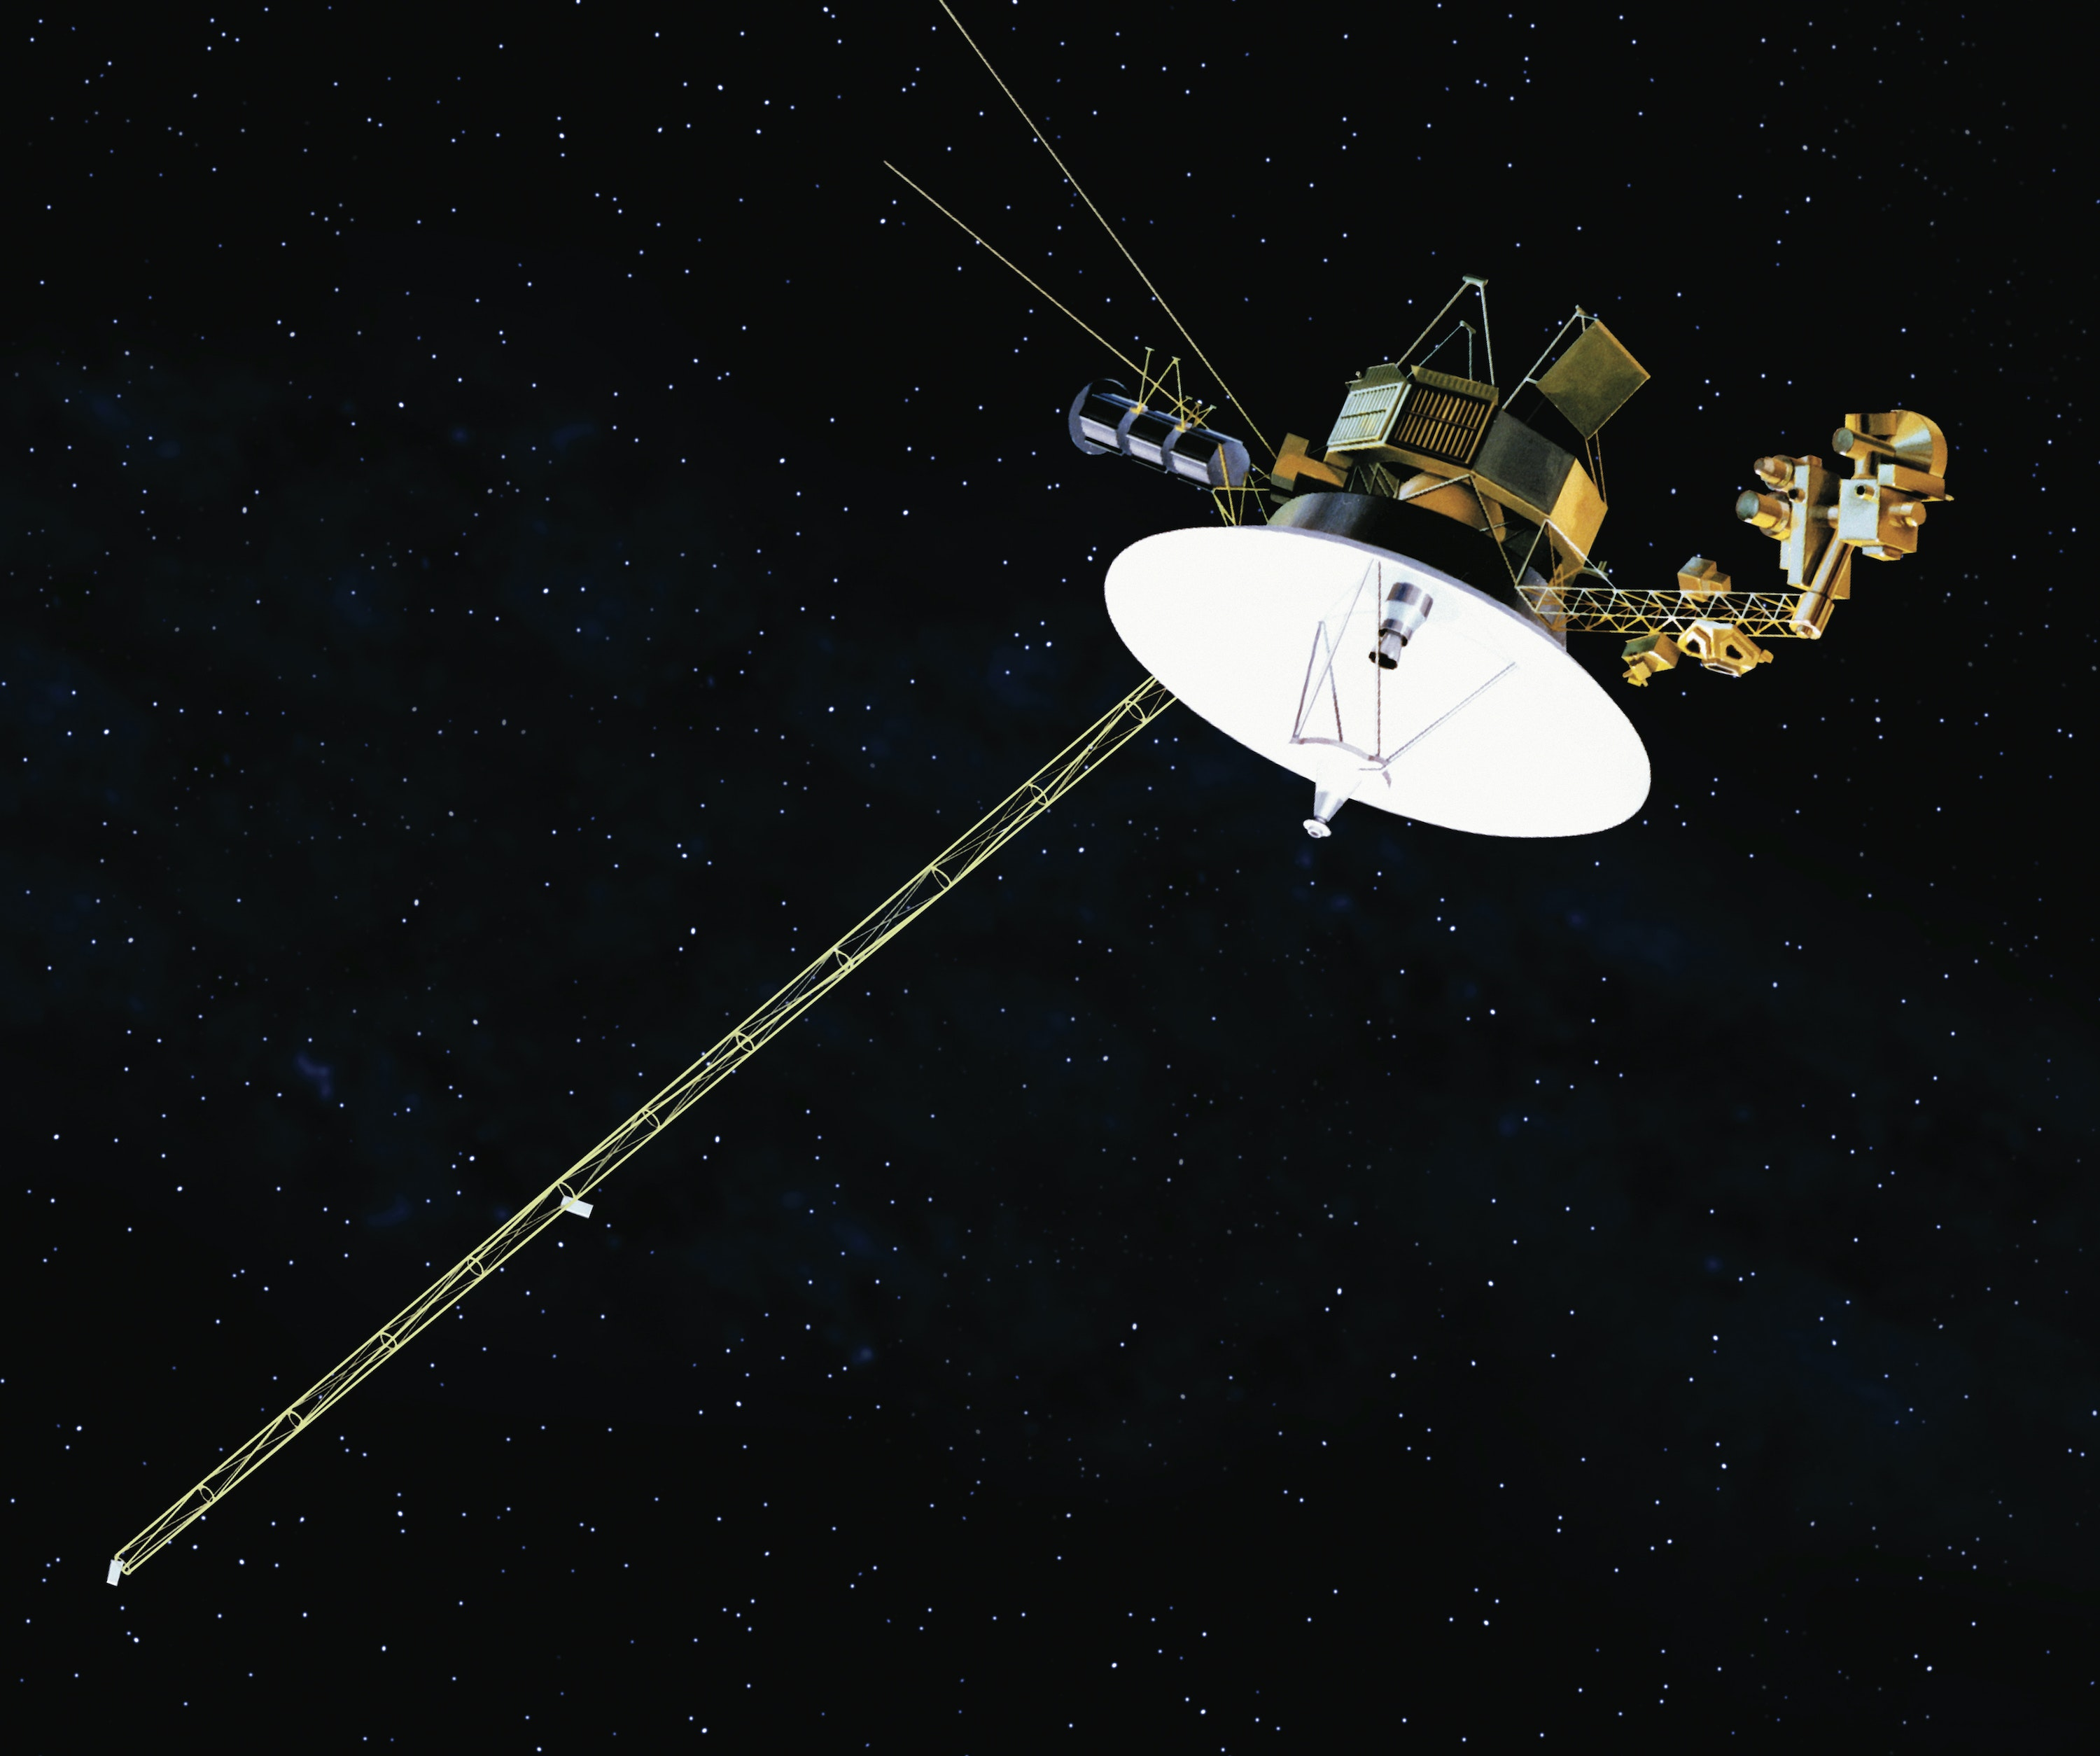 space probe voyager - HD 3000×2508